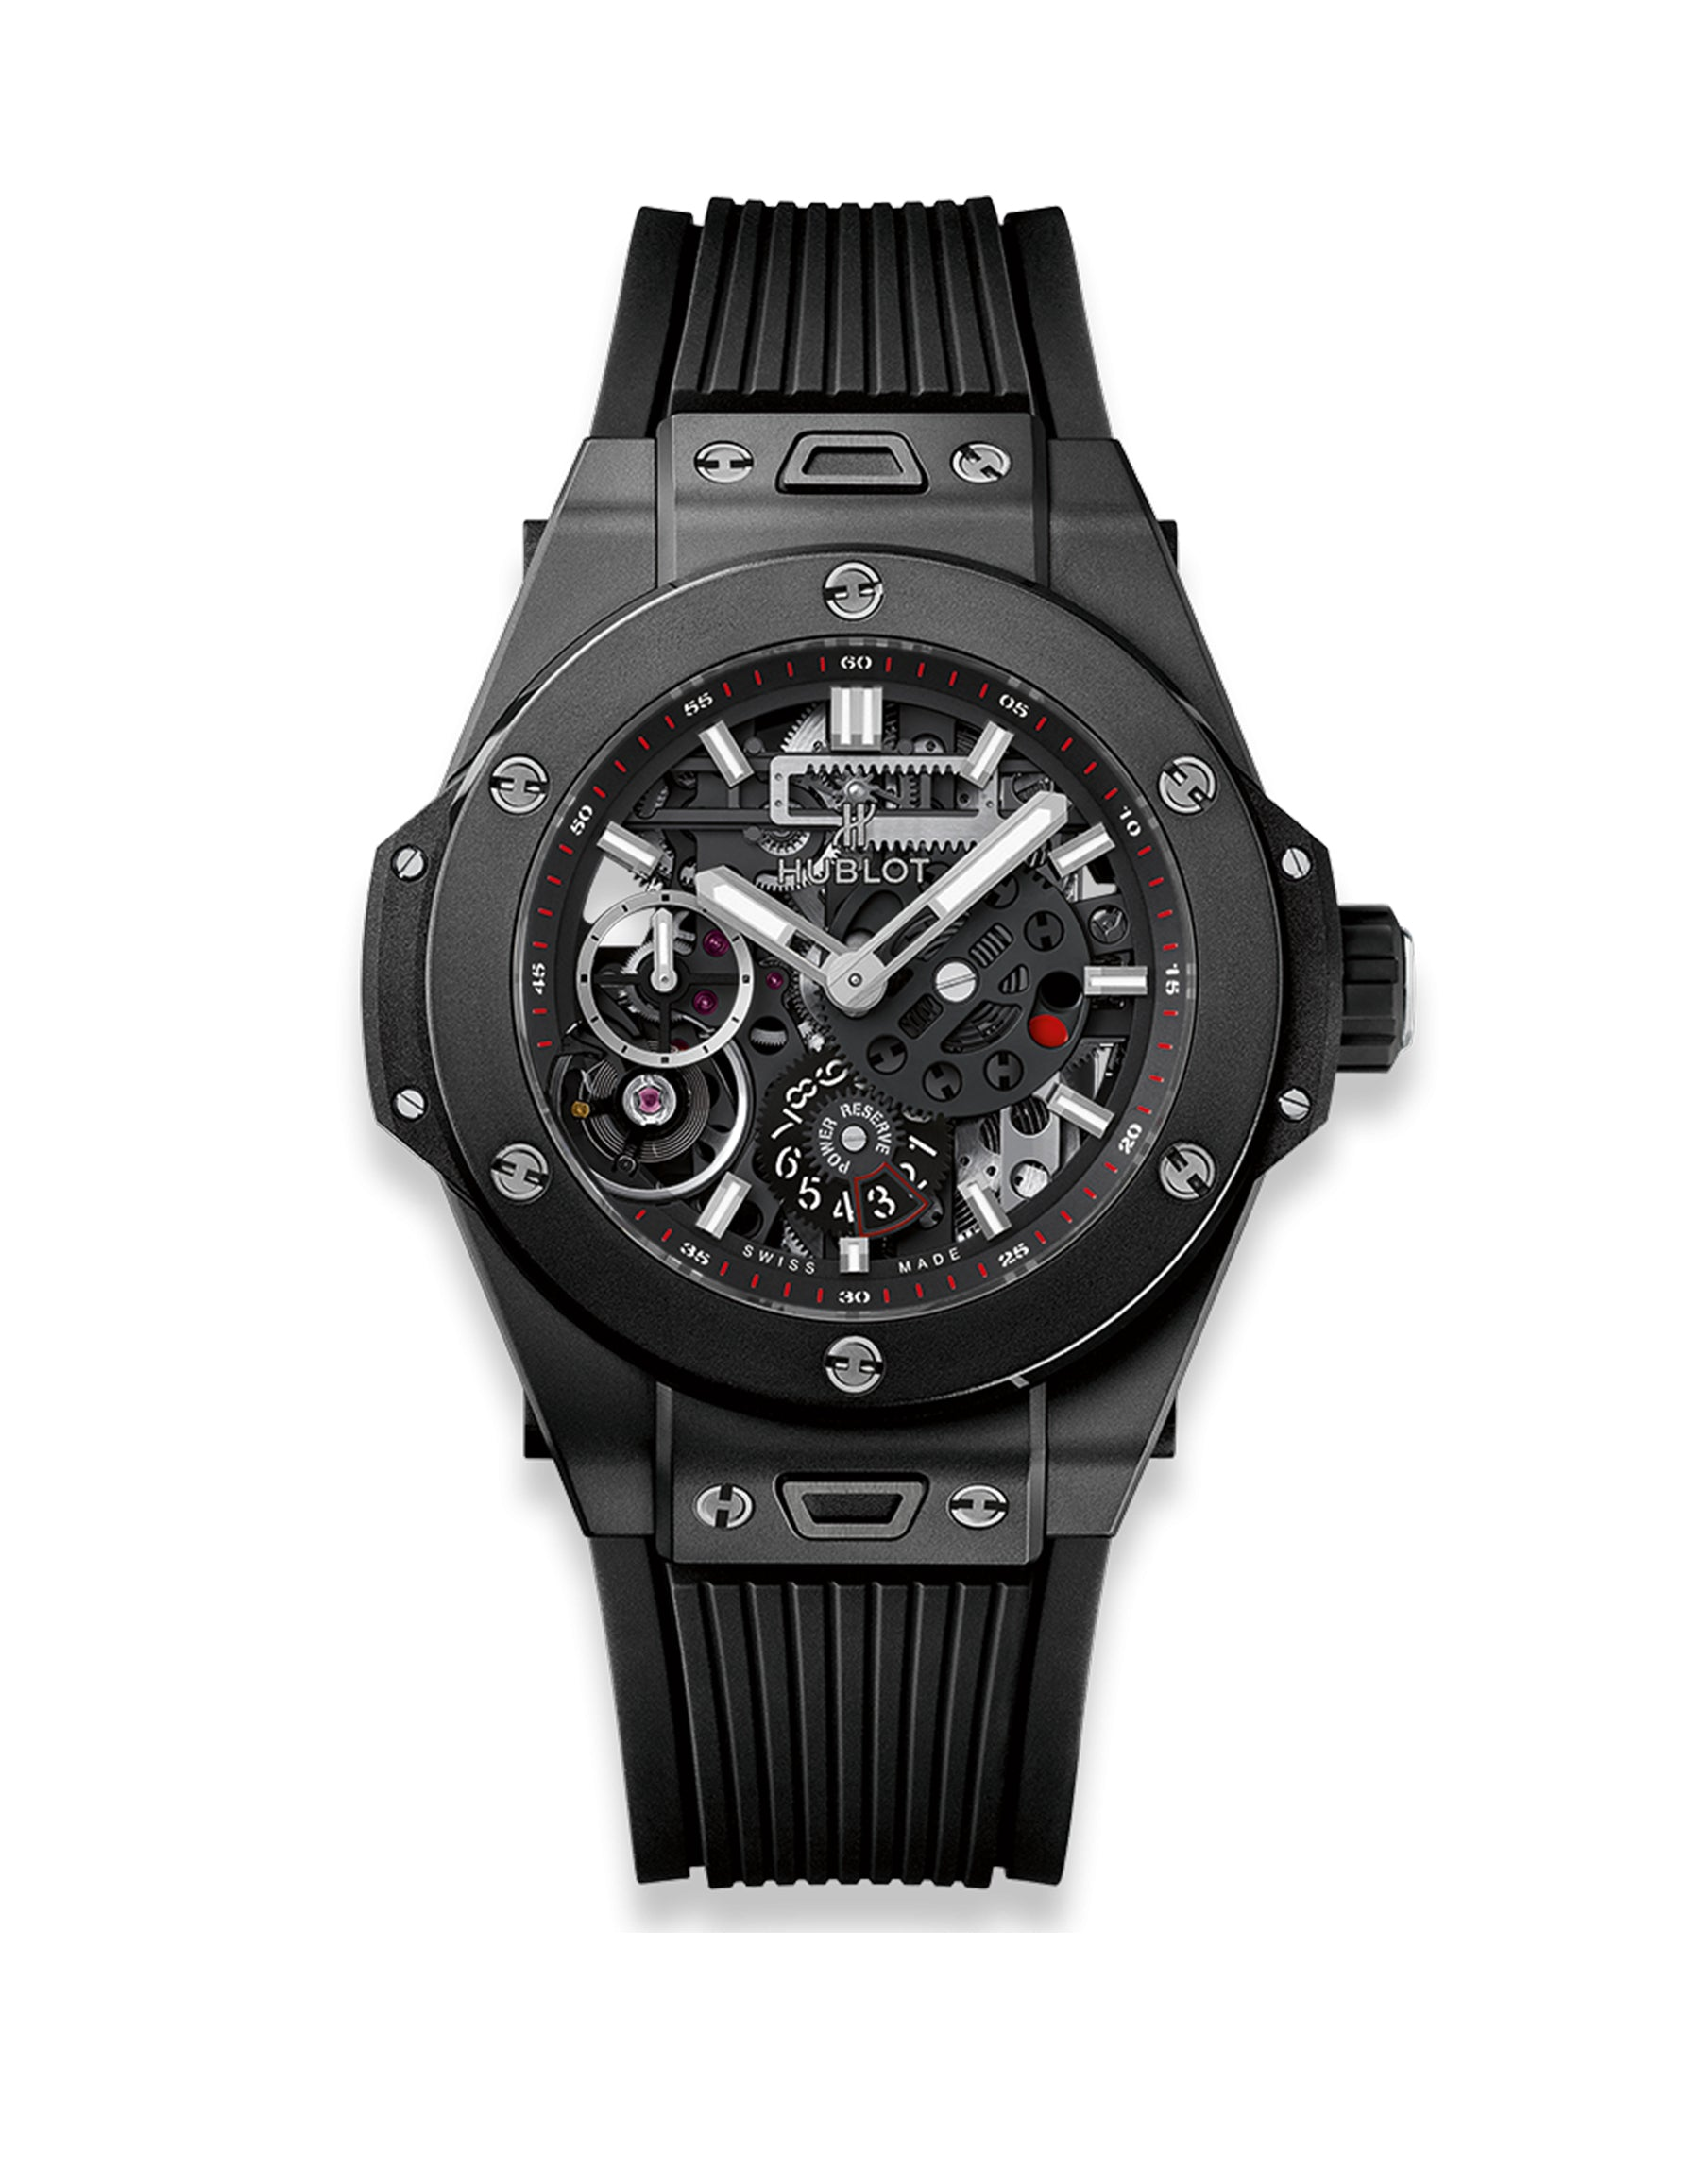 Big Bang Meca-10 Black Magic